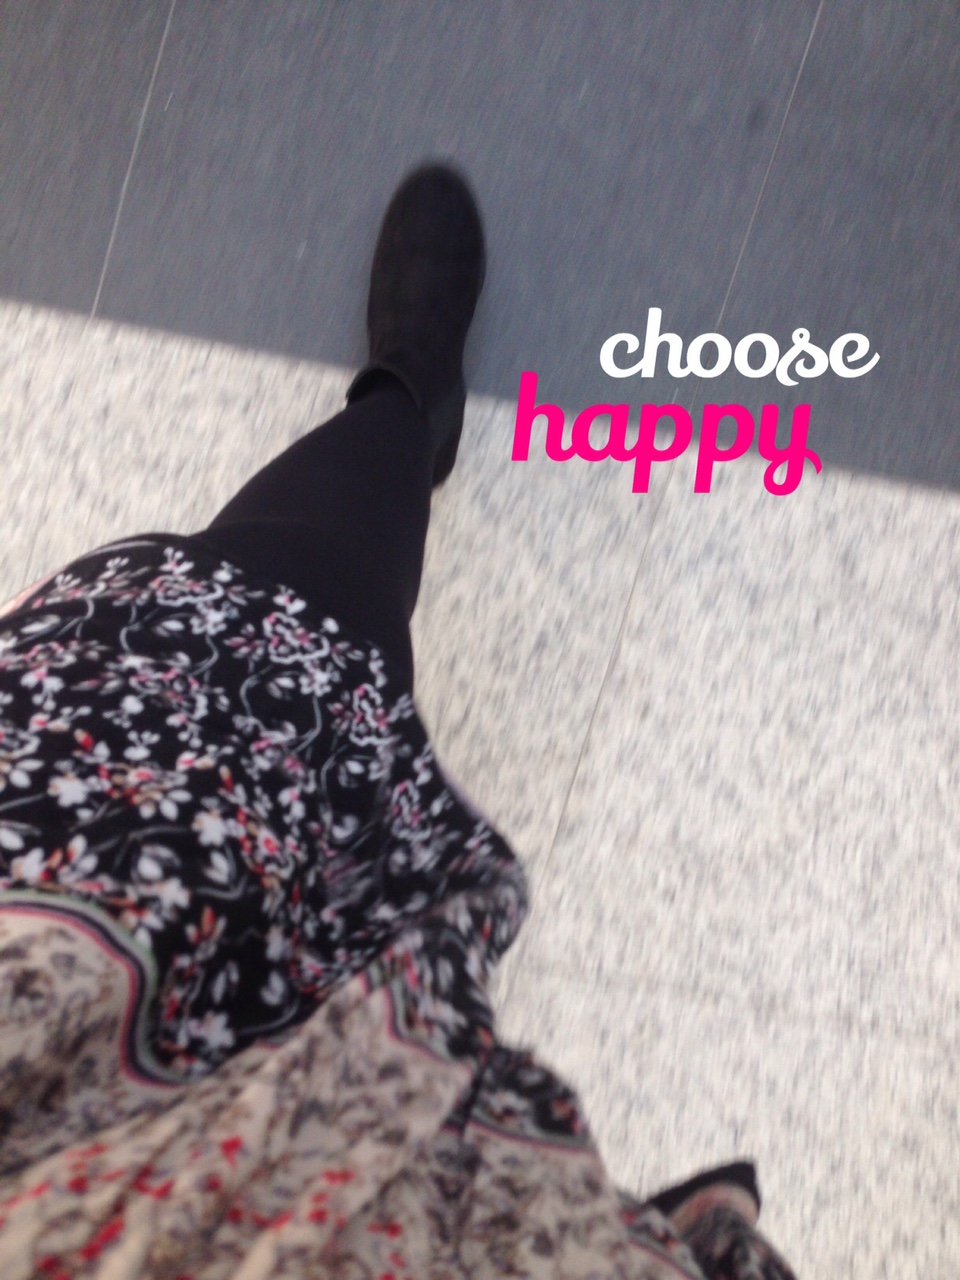 Yes, choose your own happiness!